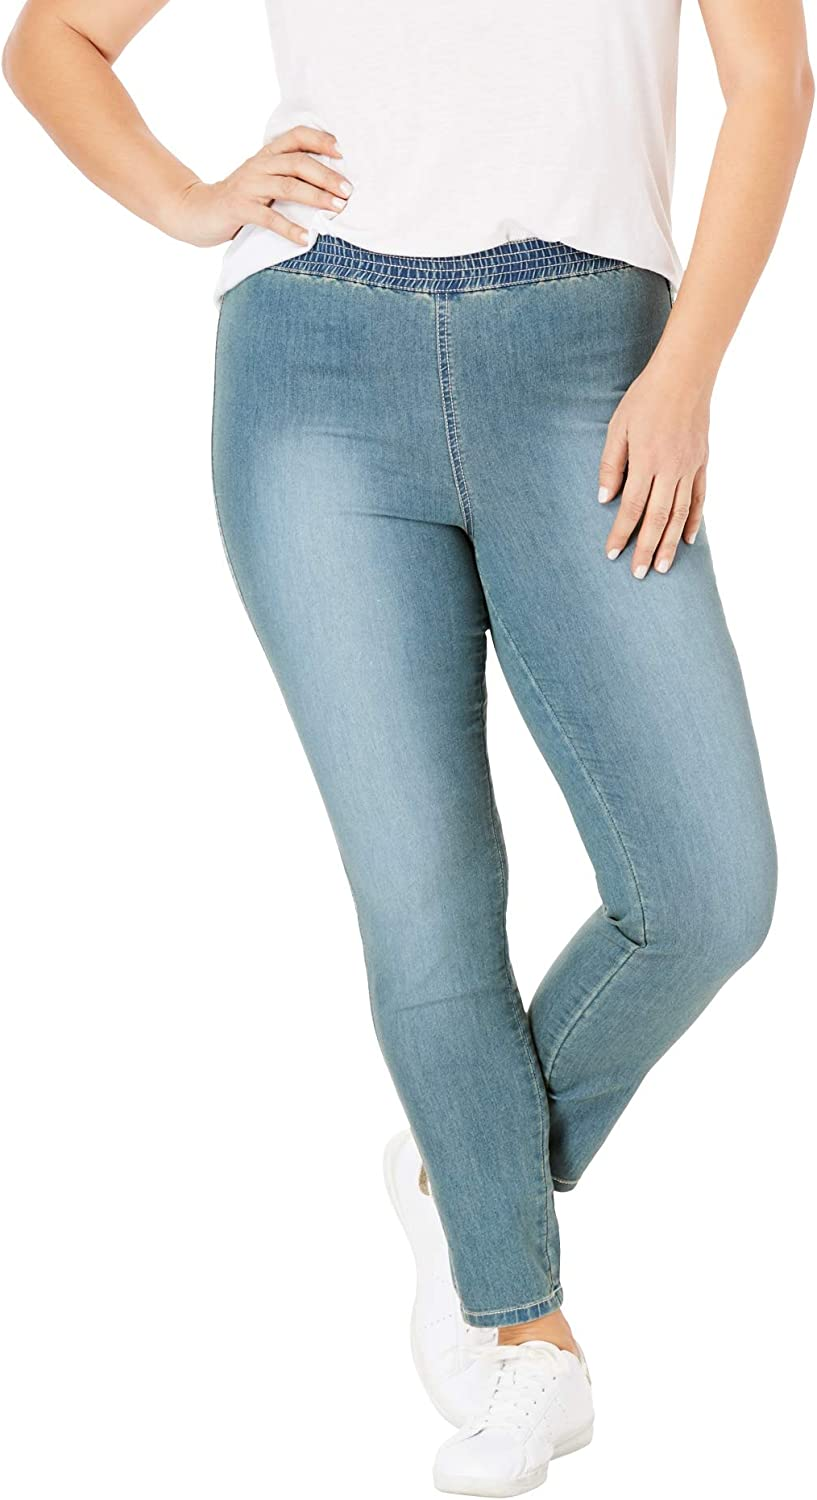 Women/'s Ladies Denim Stretchy Skinny Jeggings Jeans with pockets PLUS  Size 8-28